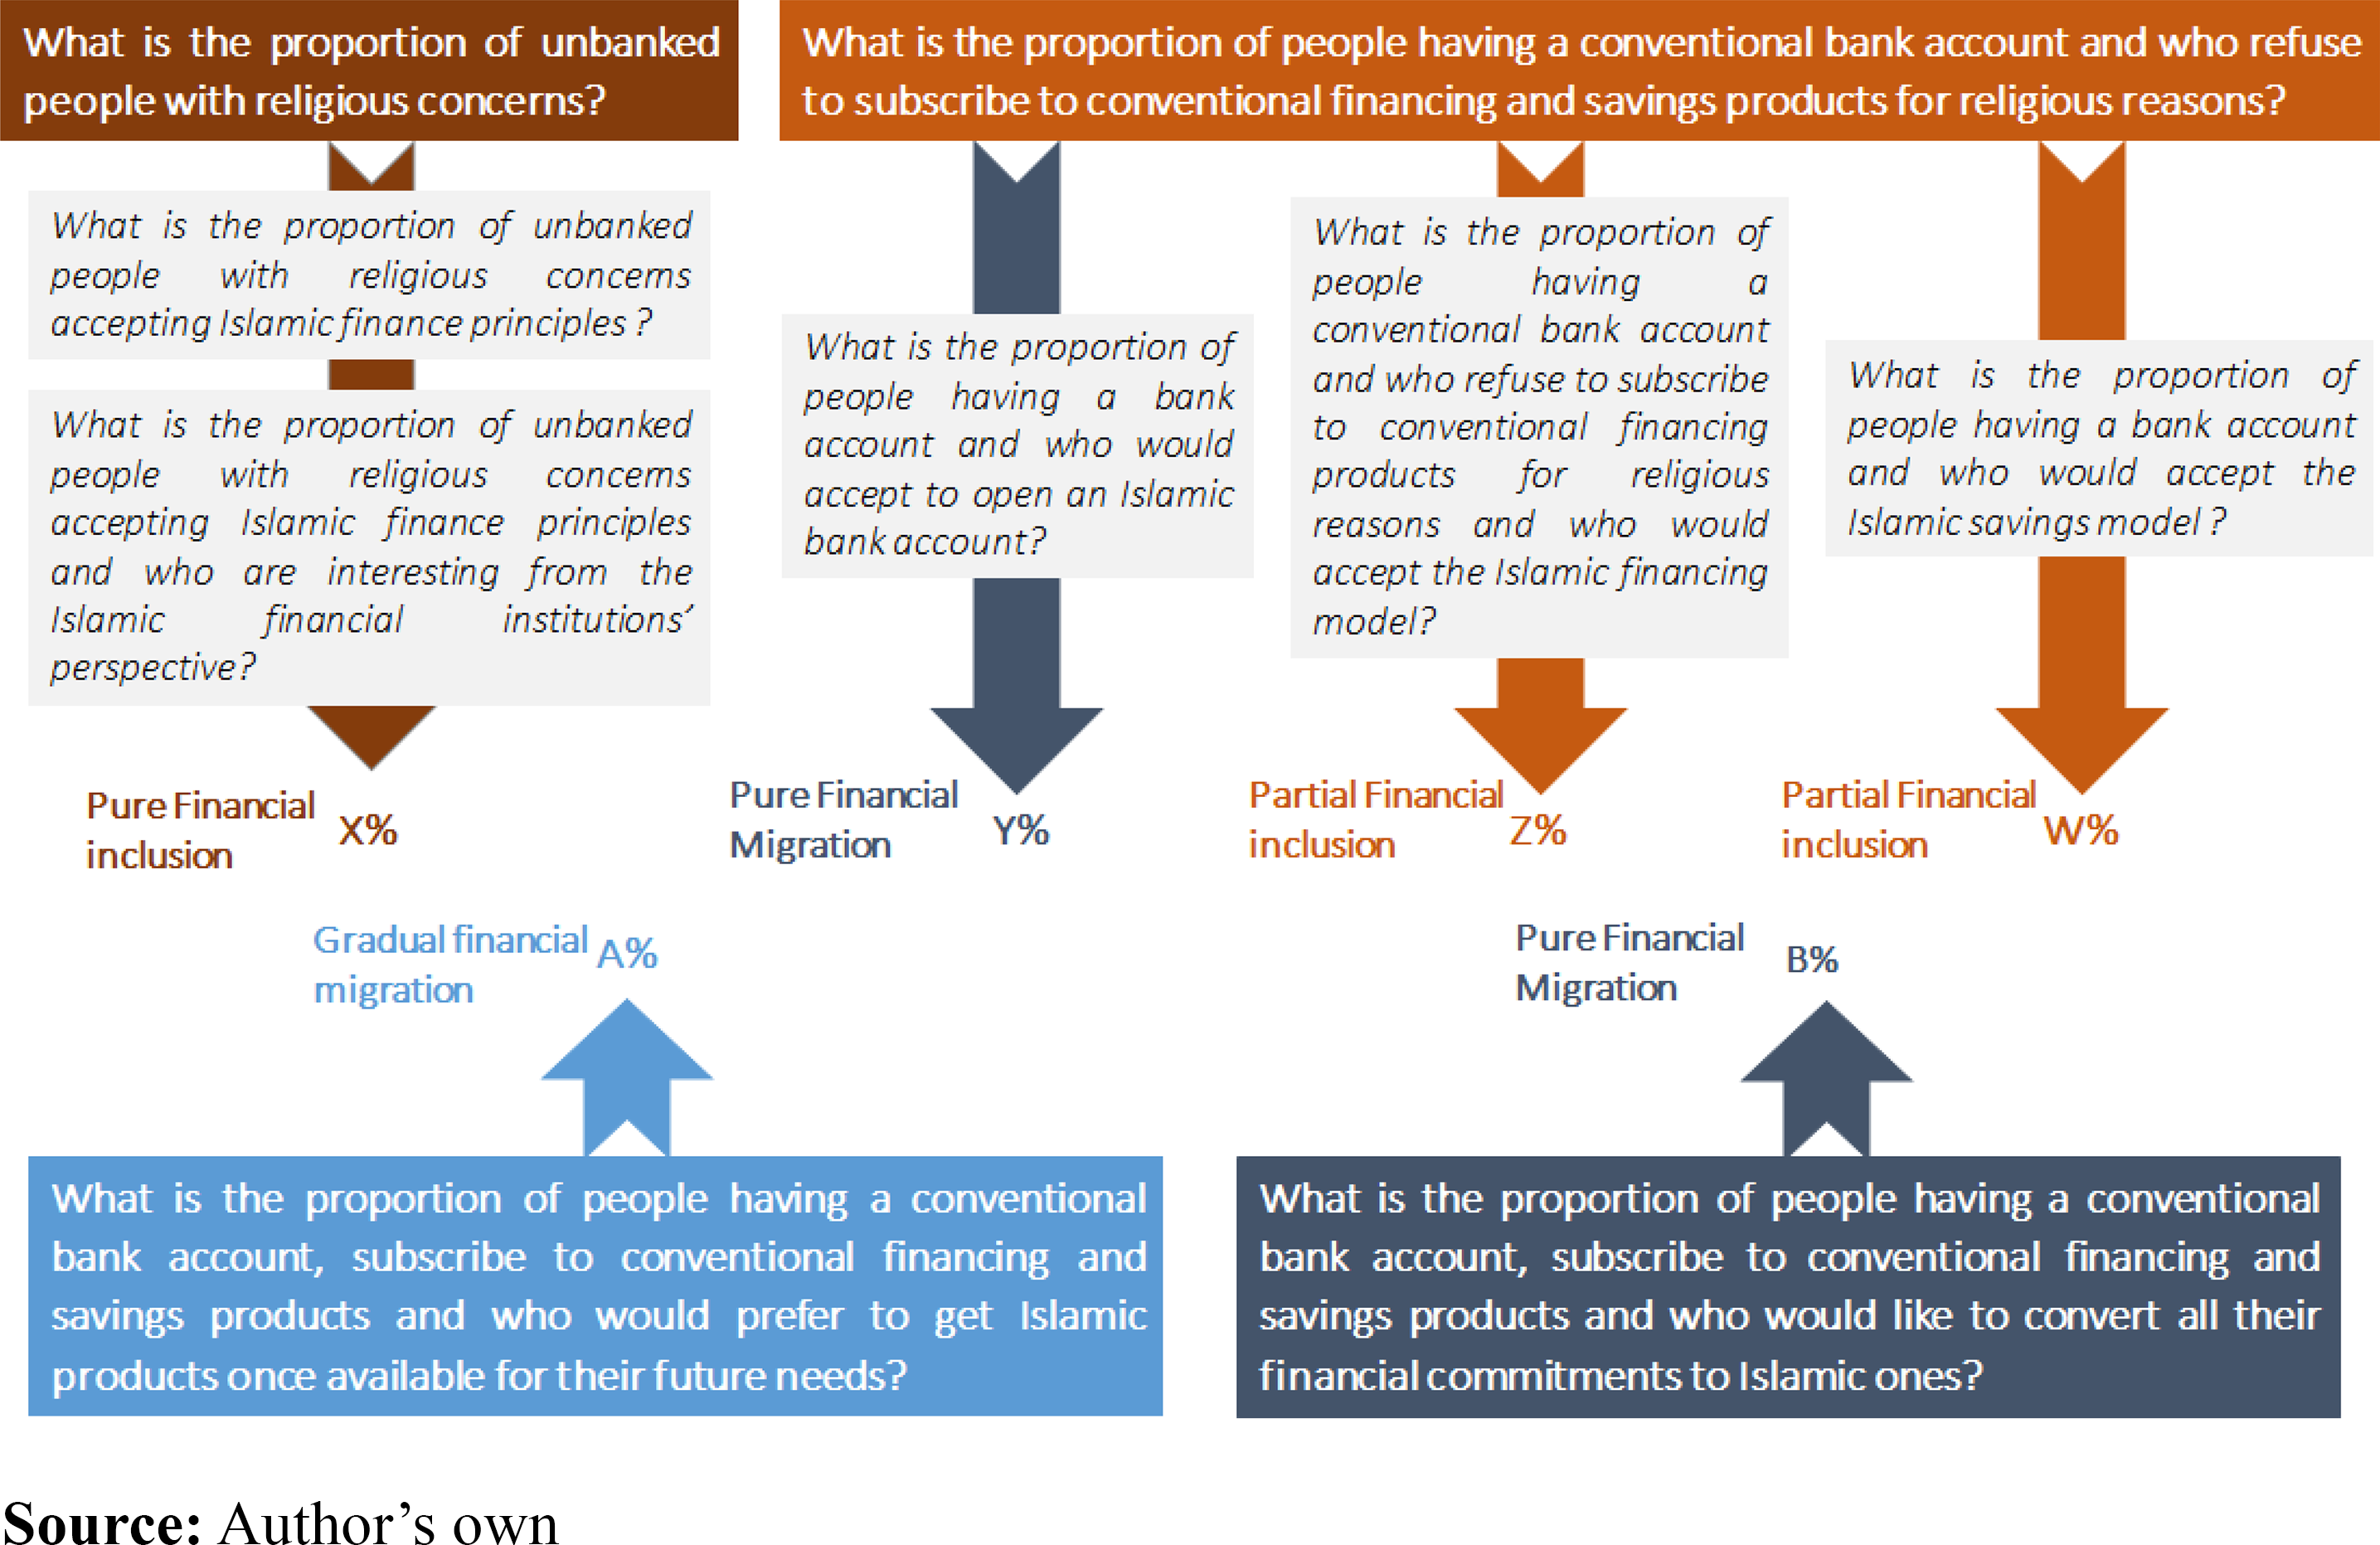 Islamic finance financial inclusion or migration   Emerald Insight